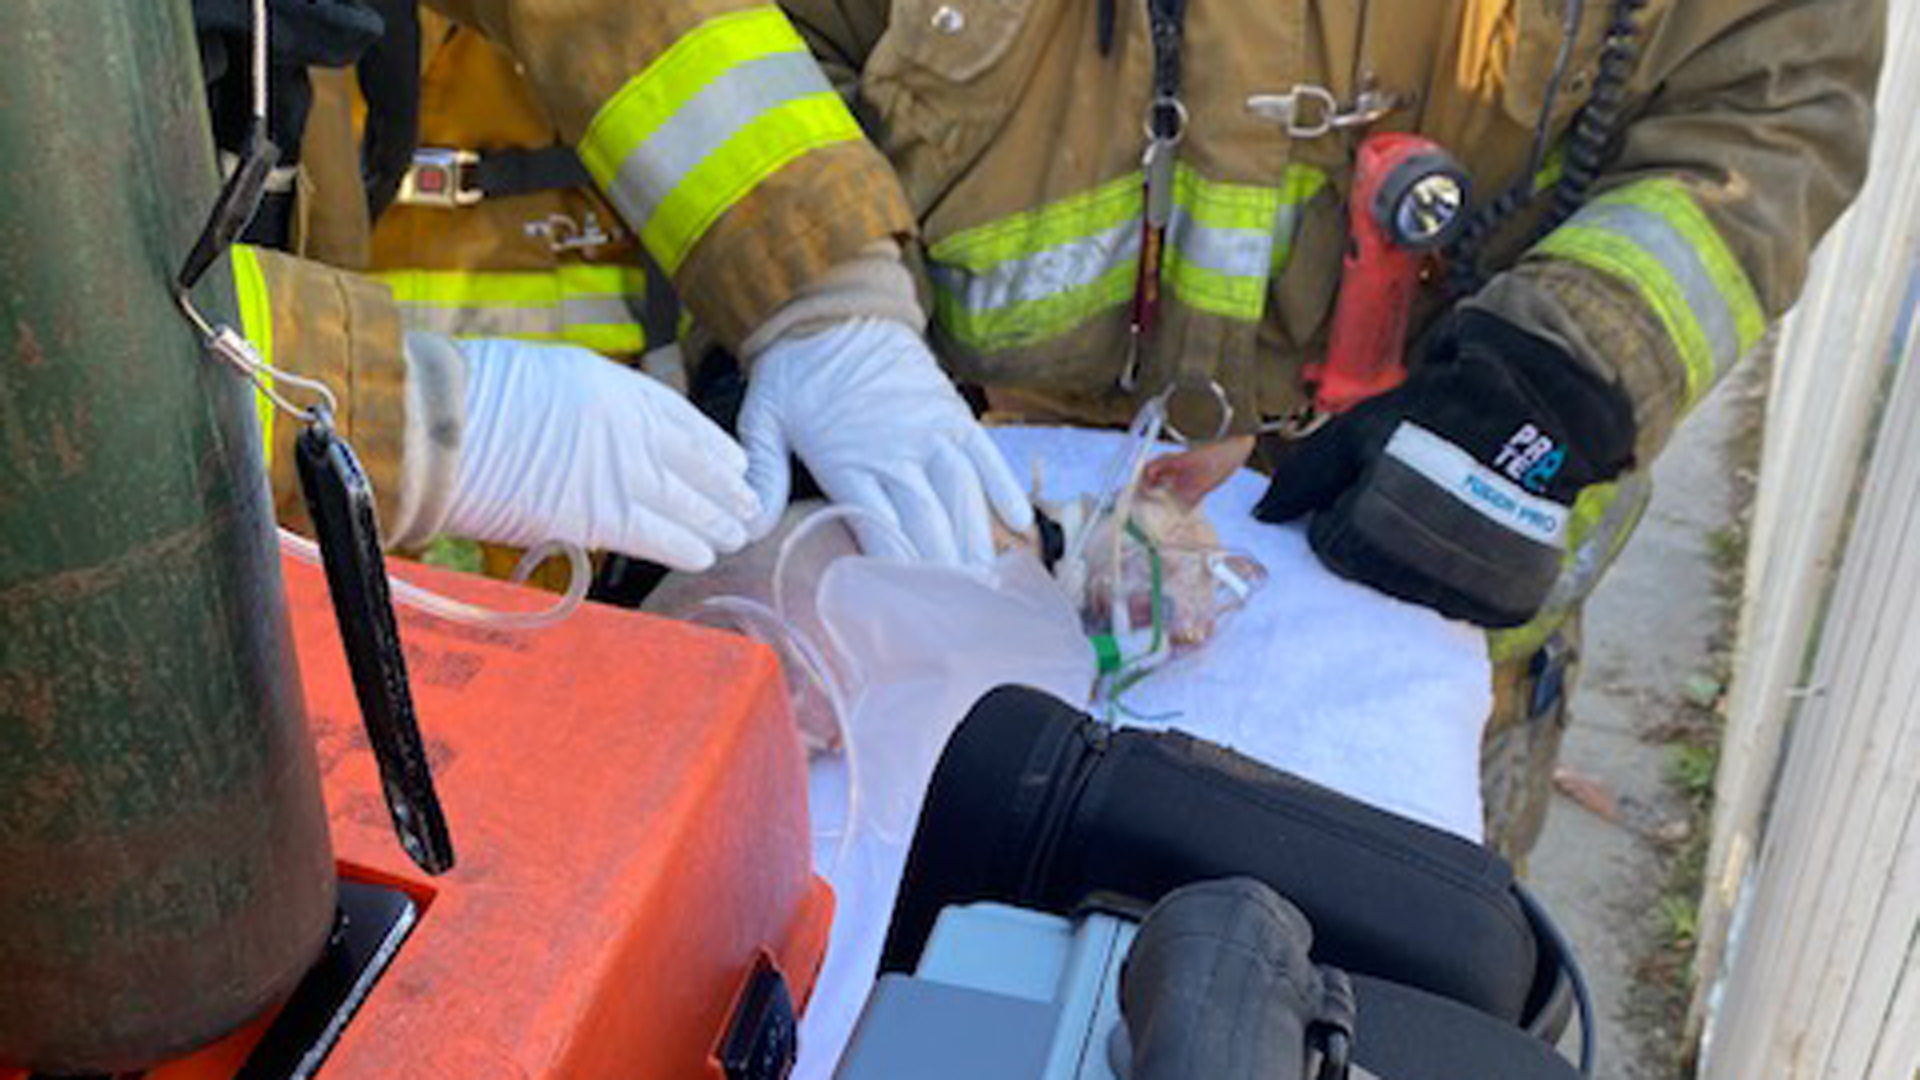 Firefighters performed life-saving measures on a dog pulled from a home that burned in Exposition Park on Dec. 16, 2019. (Credit: Ellsworth Fortman / Los Angeles Fire Department)